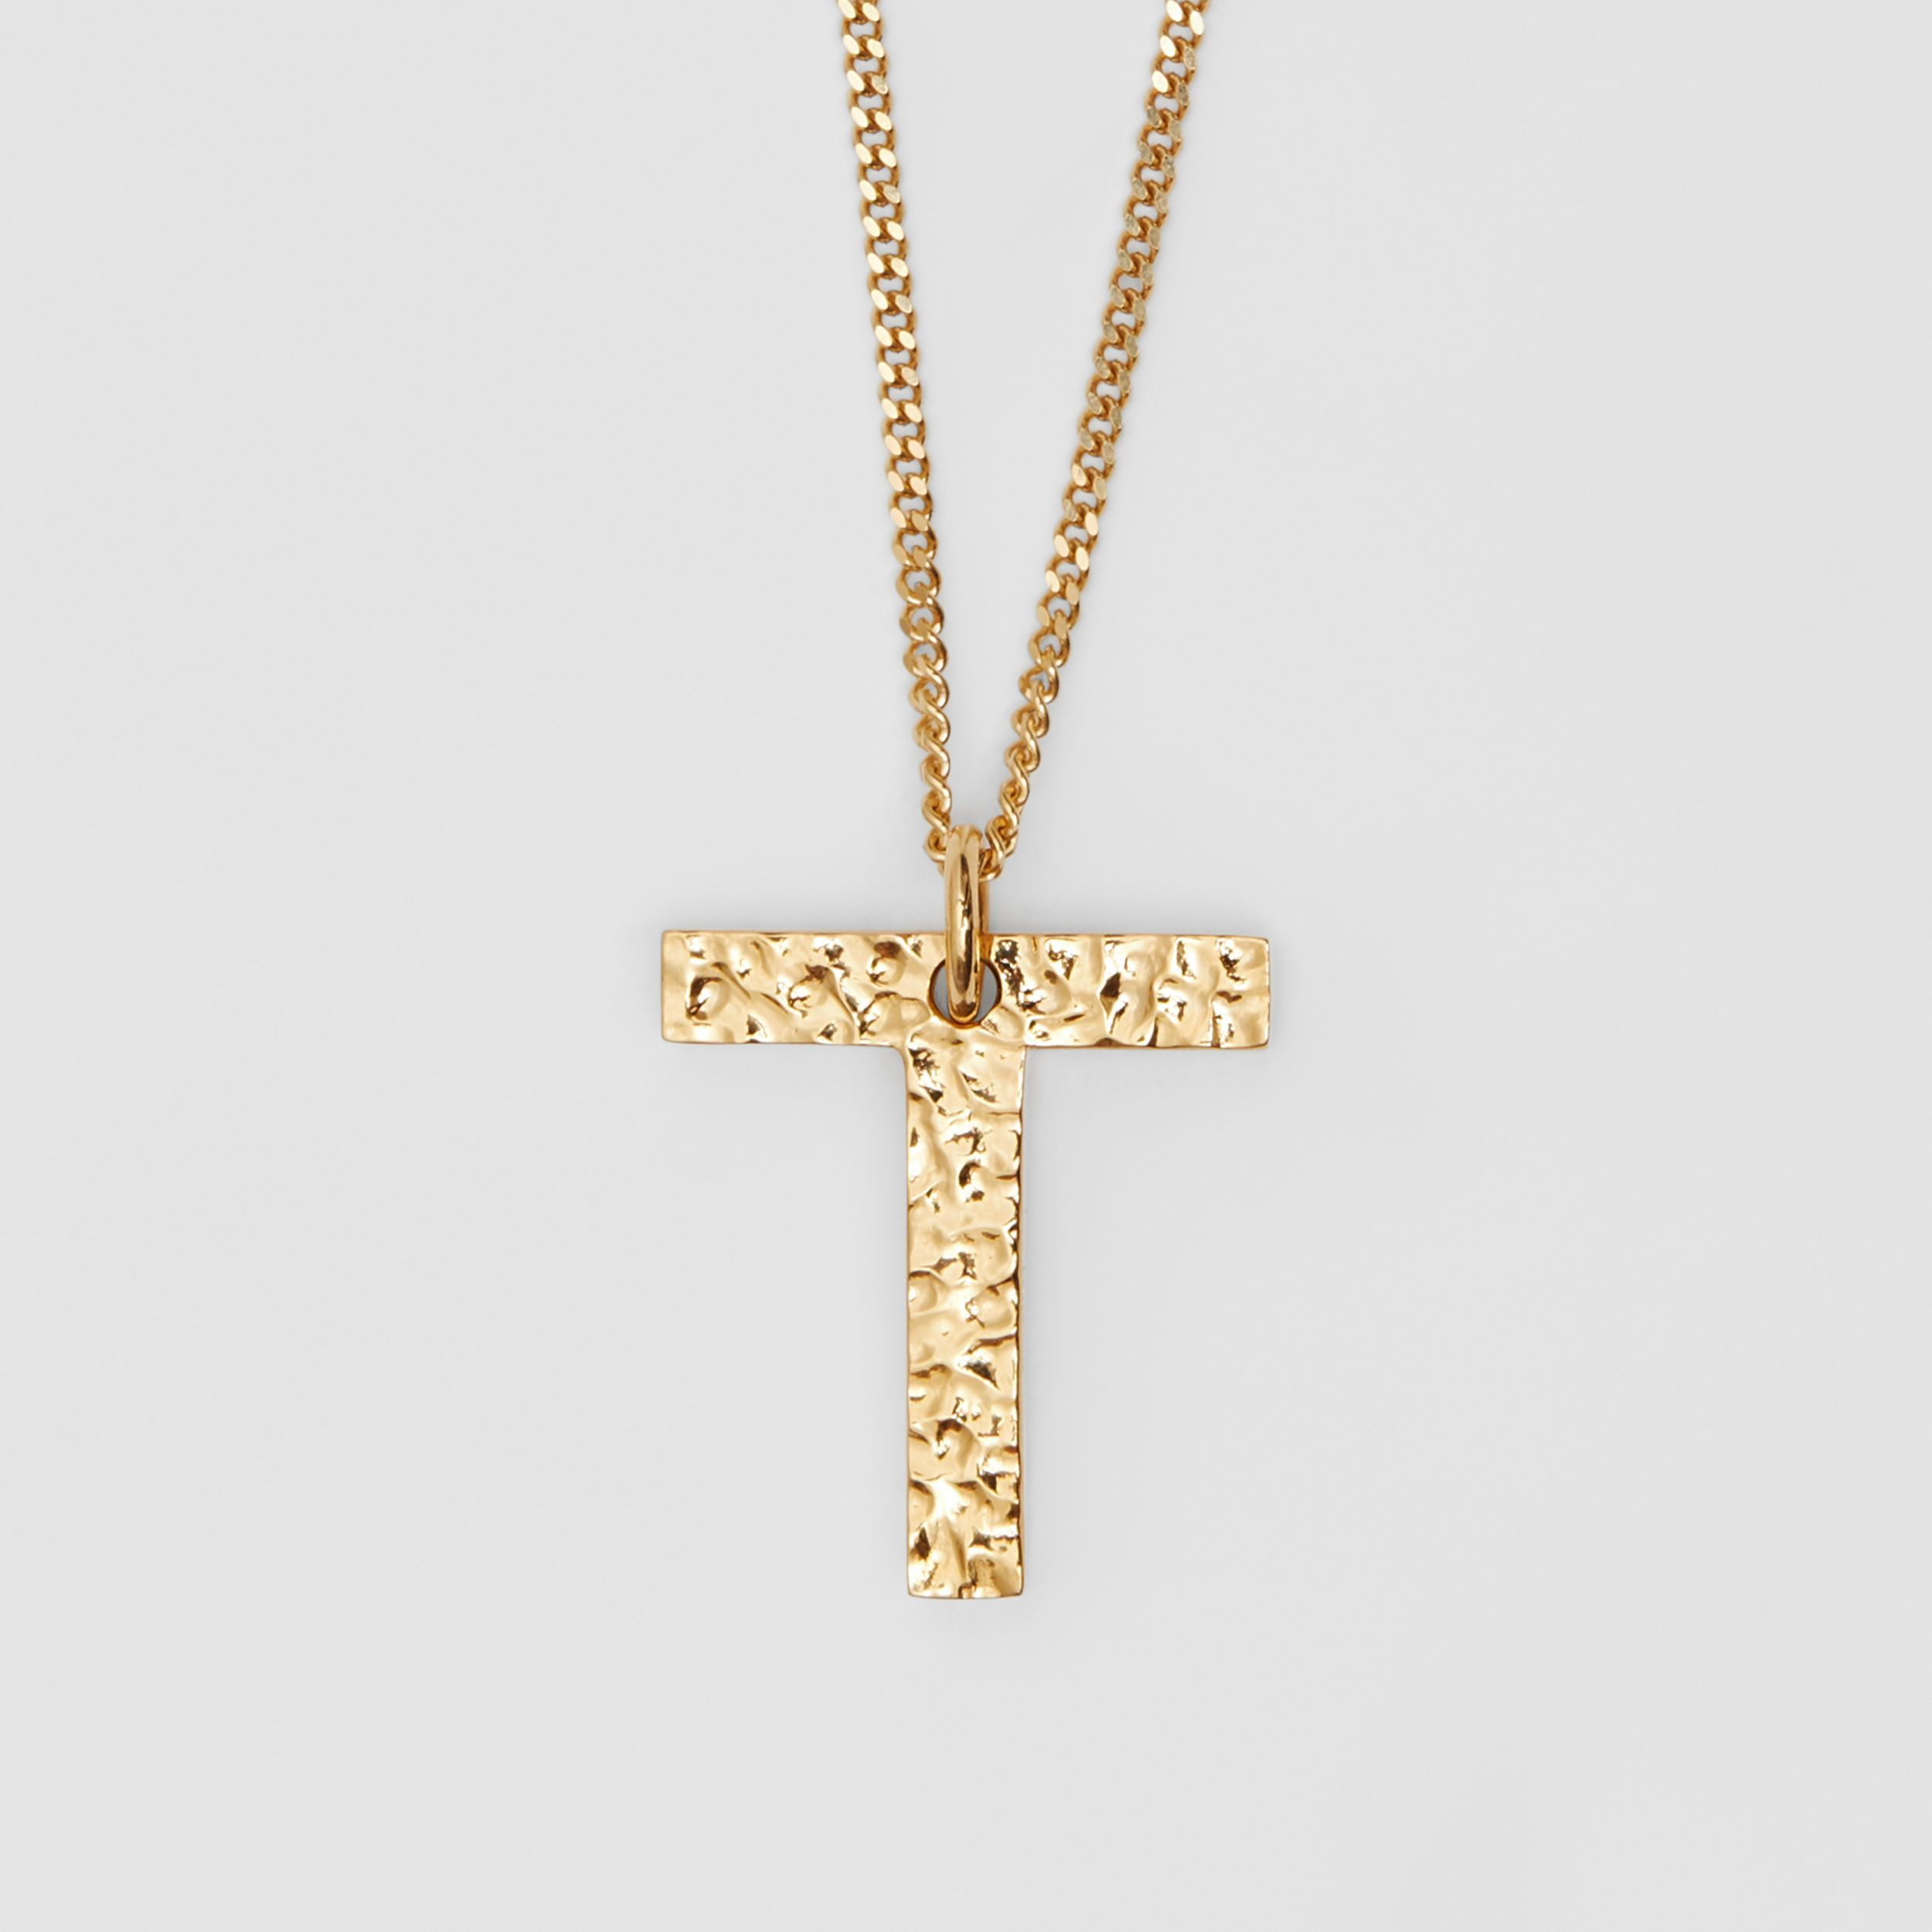 'T' Alphabet Charm Gold-plated Necklace in Light - Women | Burberry - 3